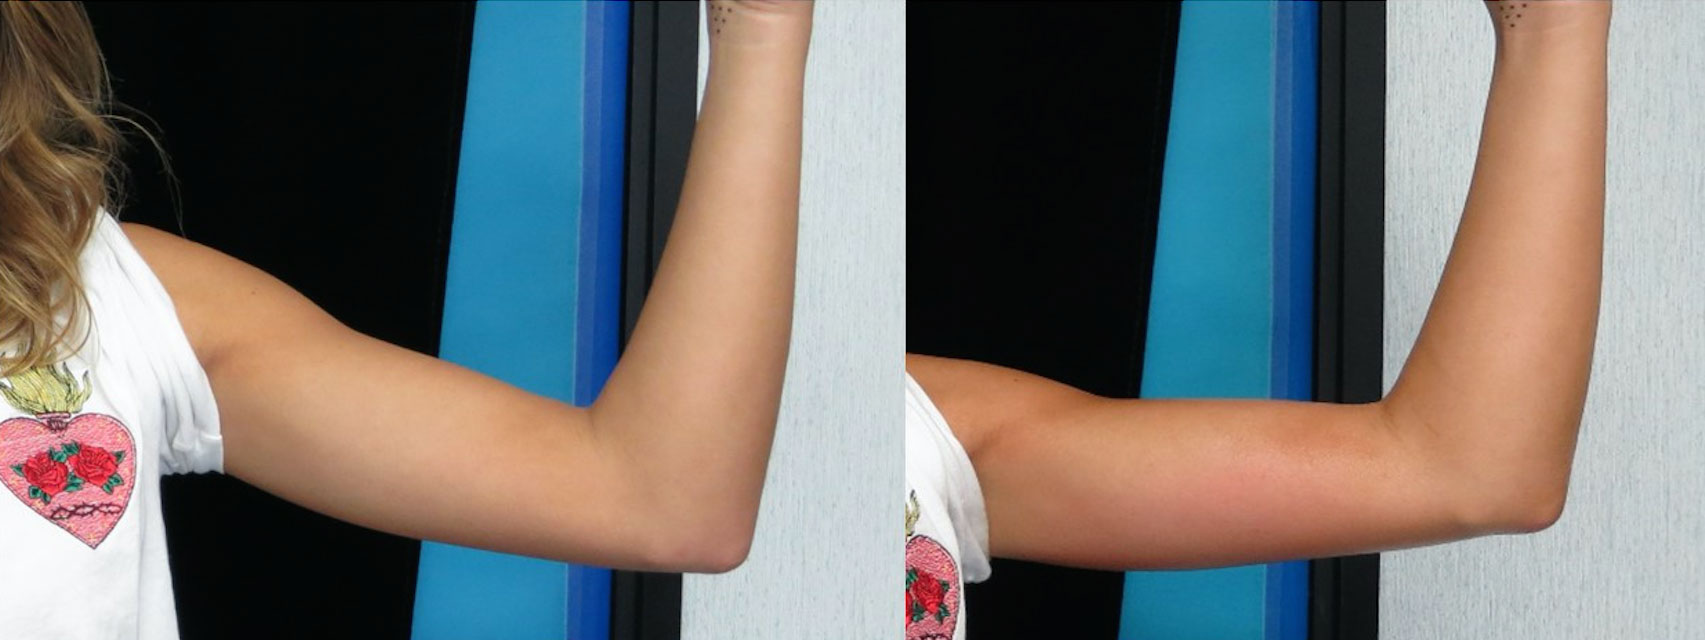 before and after photo of a female patient's left arm that is flatter after 4 sessions of non surgical laser fat melting